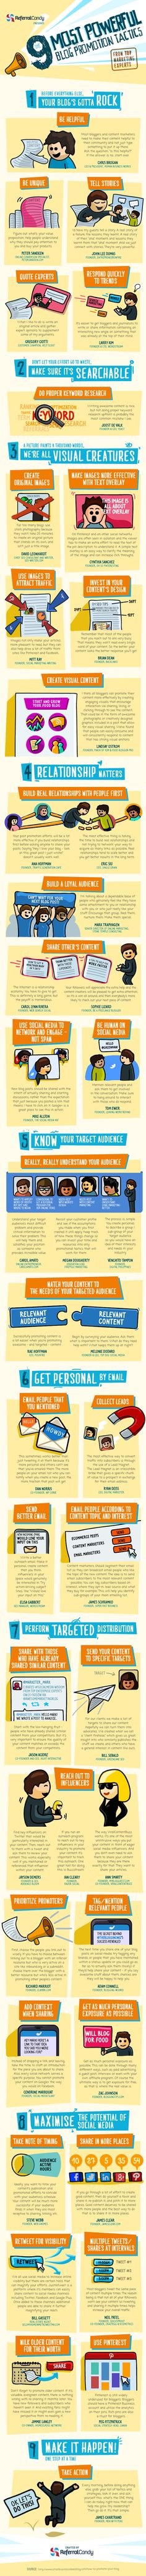 blog promotion infographic